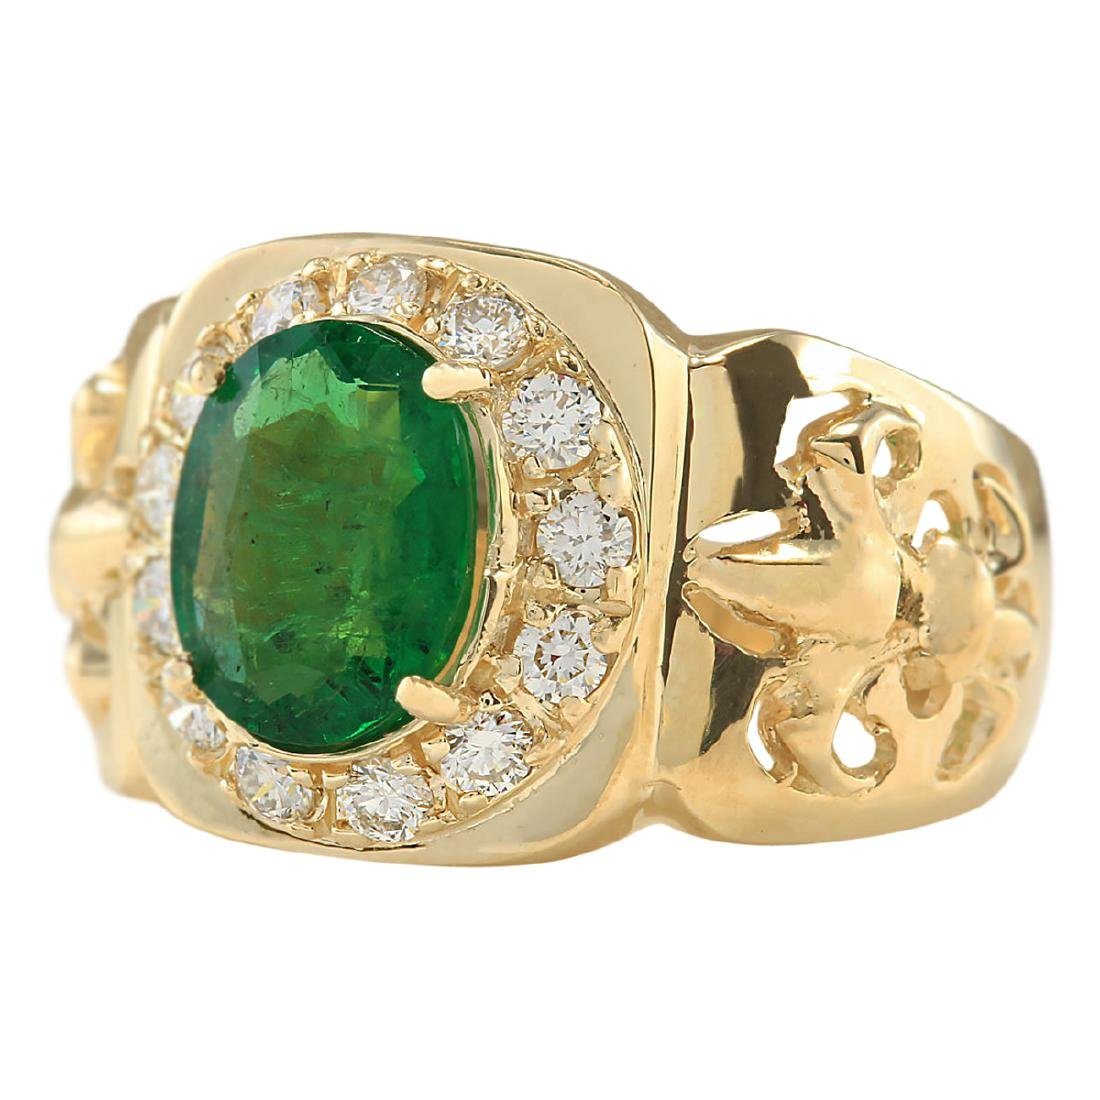 3.02 CTW Natural Emerald And Diamond Ring In 18K Yellow - 2